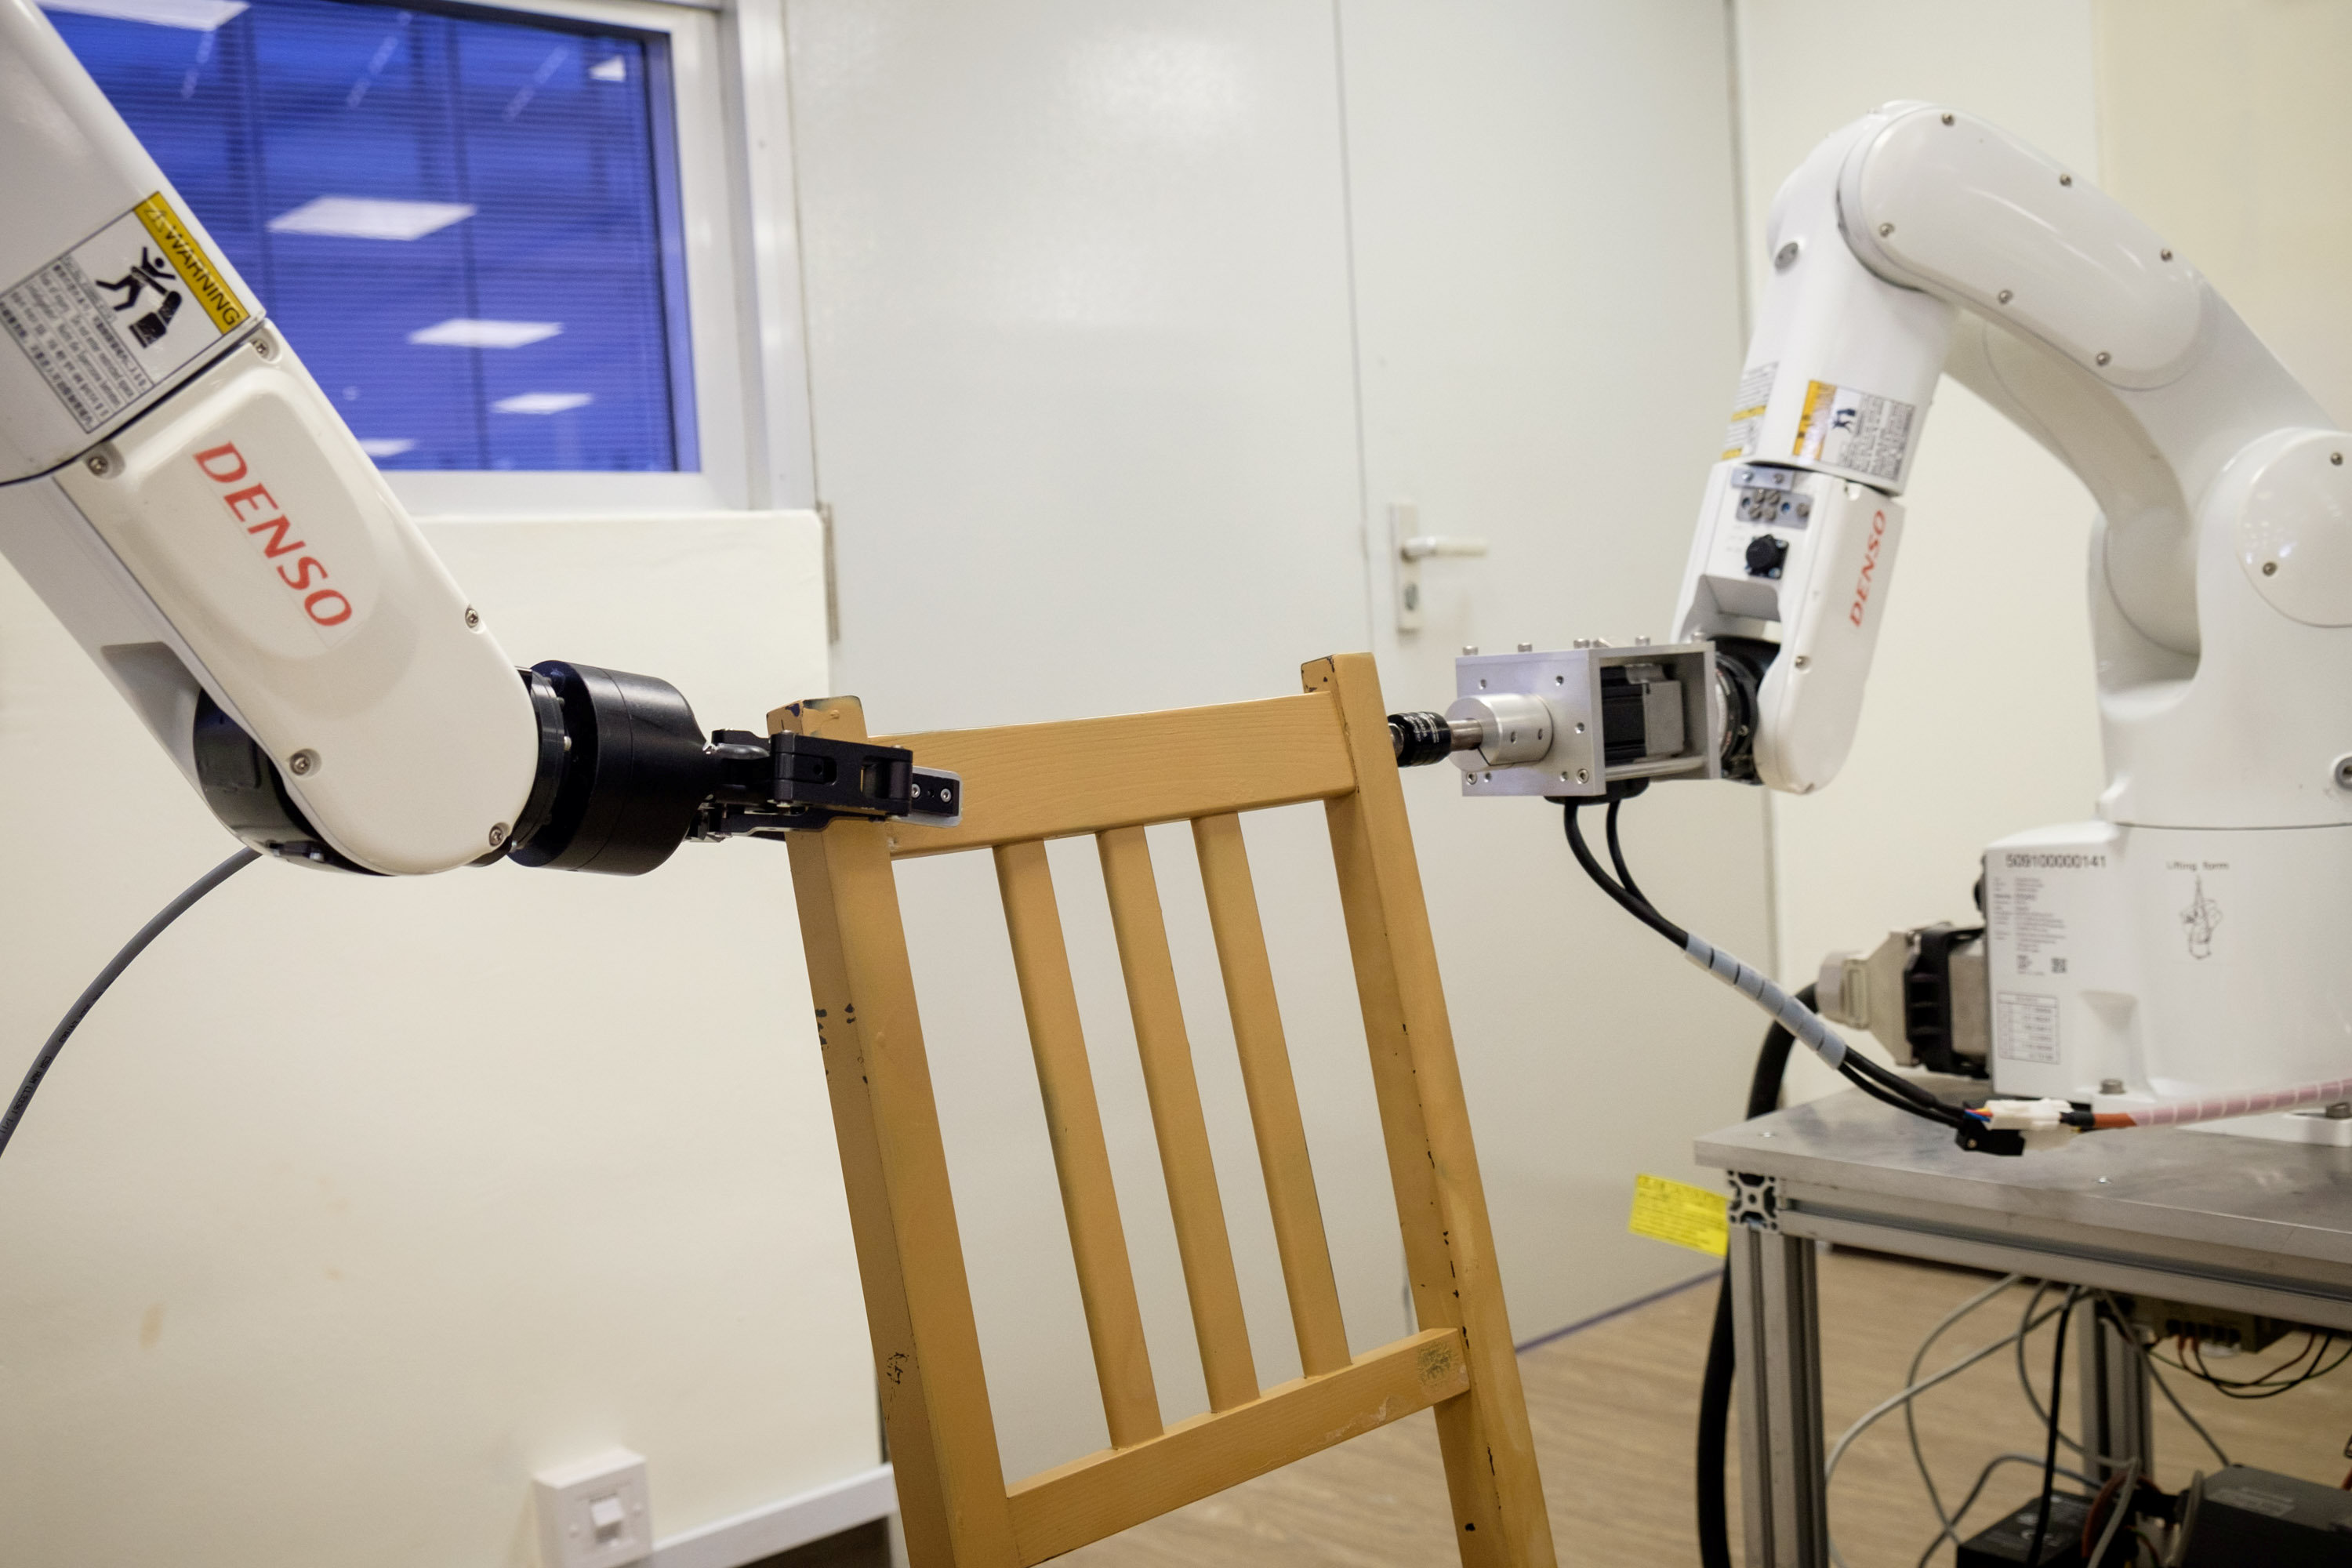 Flatpack Fear No More Robot Assembles IKEA Chair Frame OMG News Today